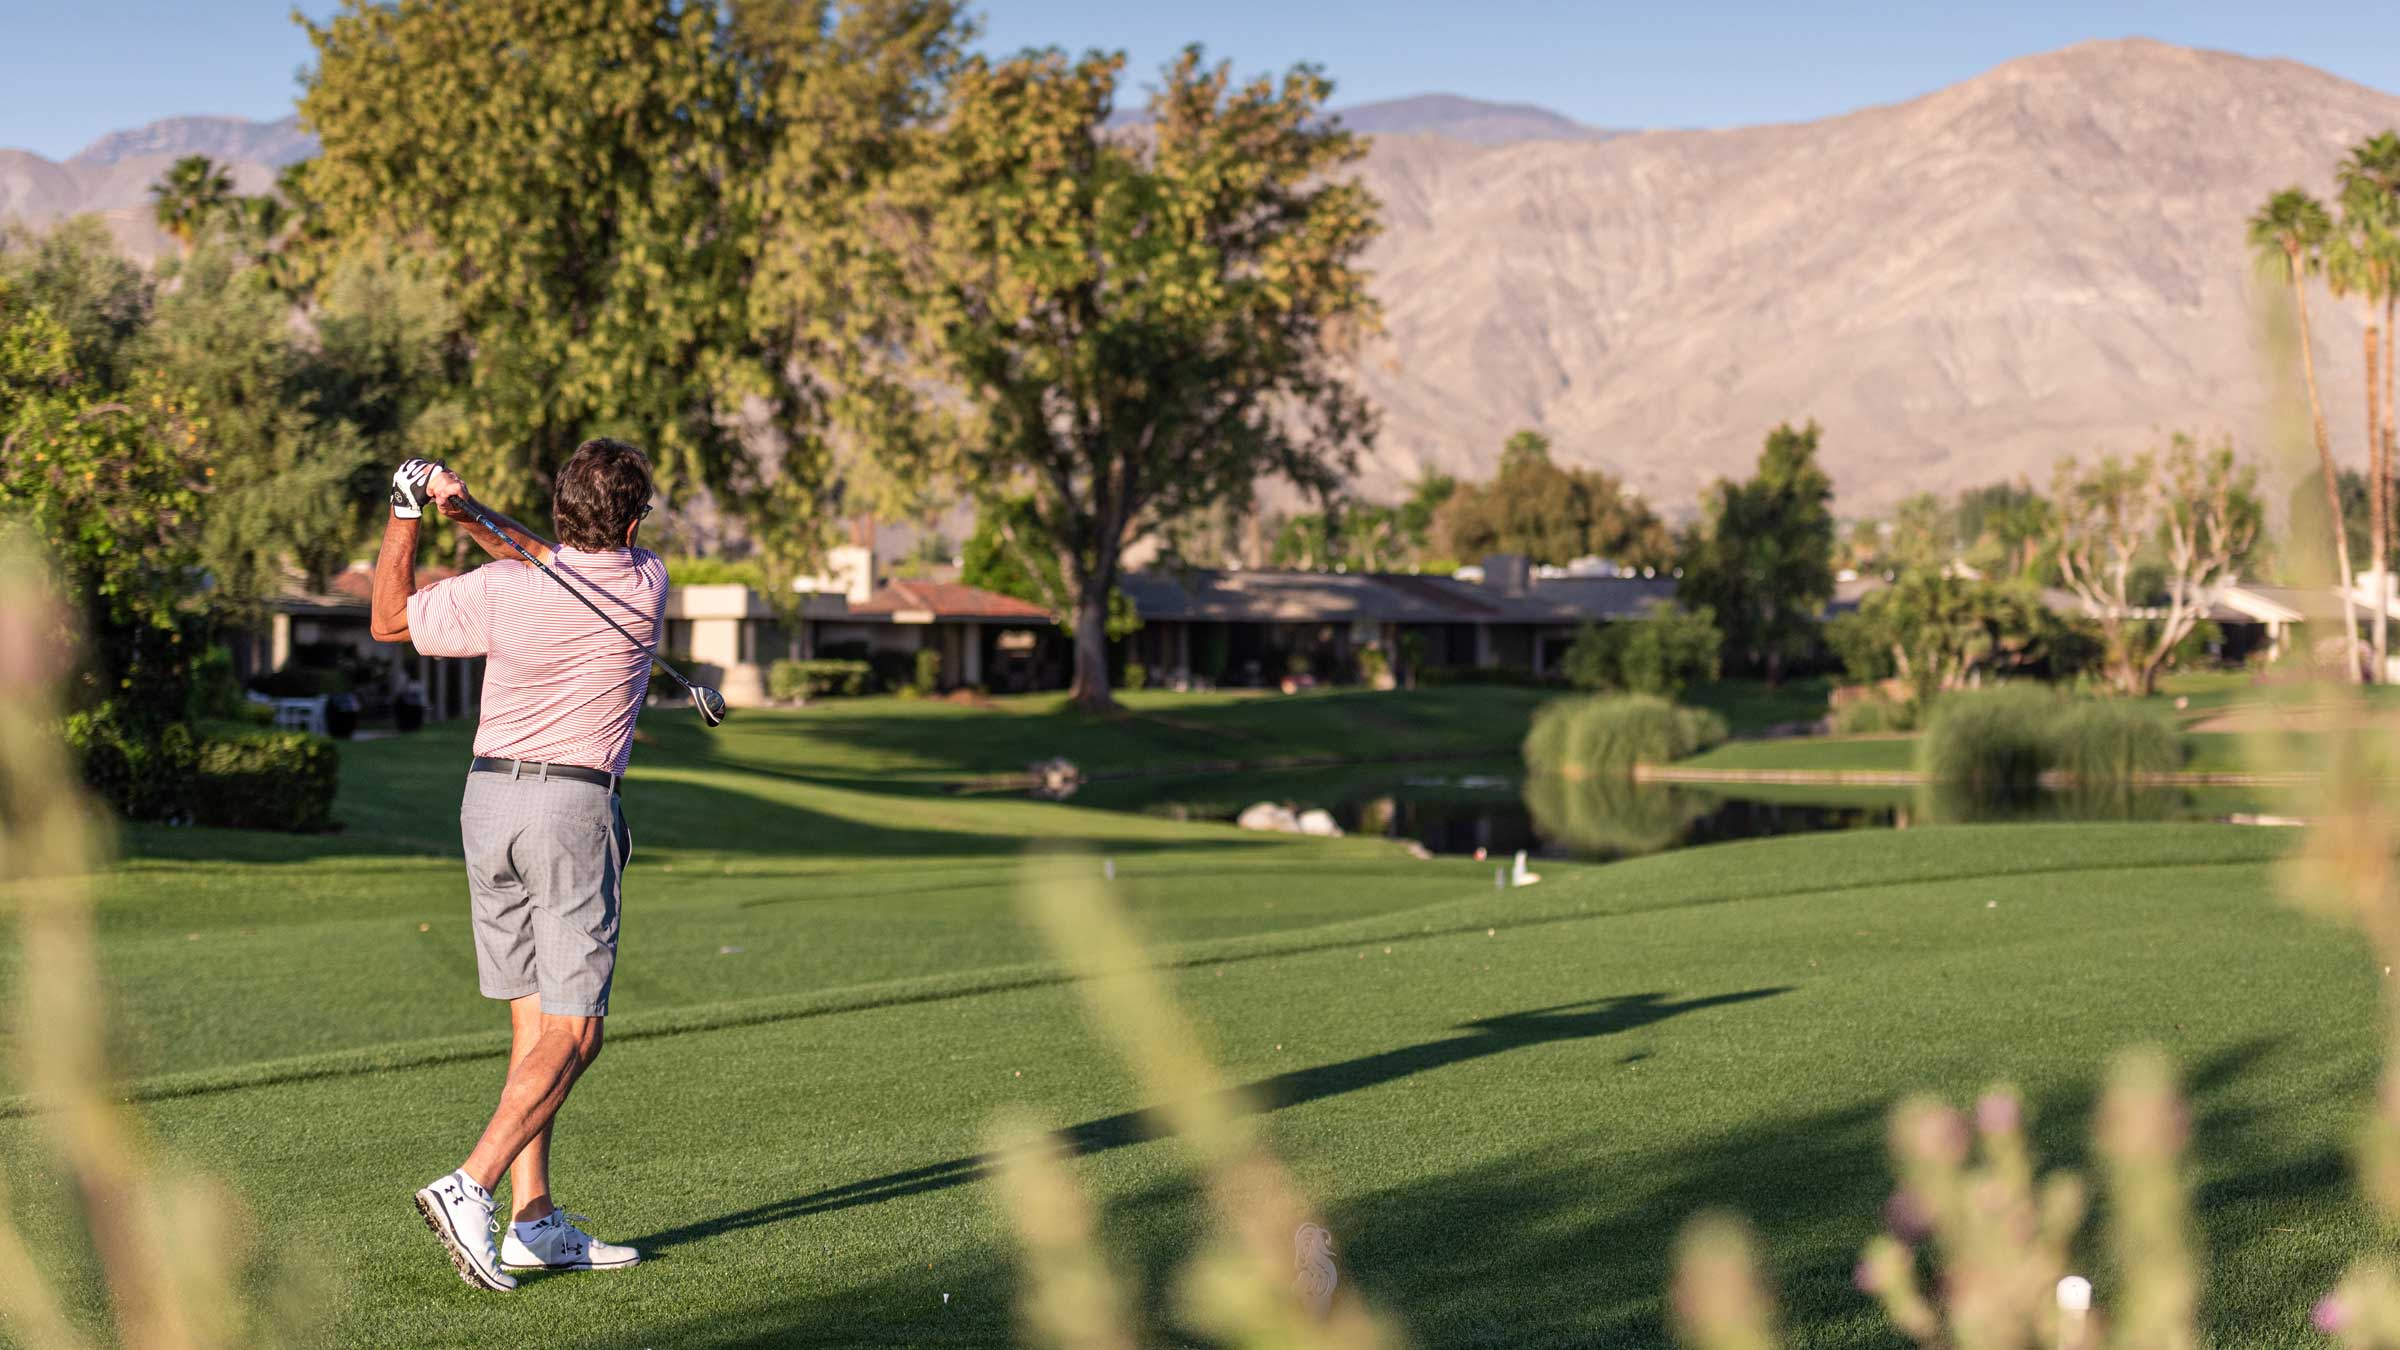 Golf at The Springs Country Club in Rancho Mirage, CA